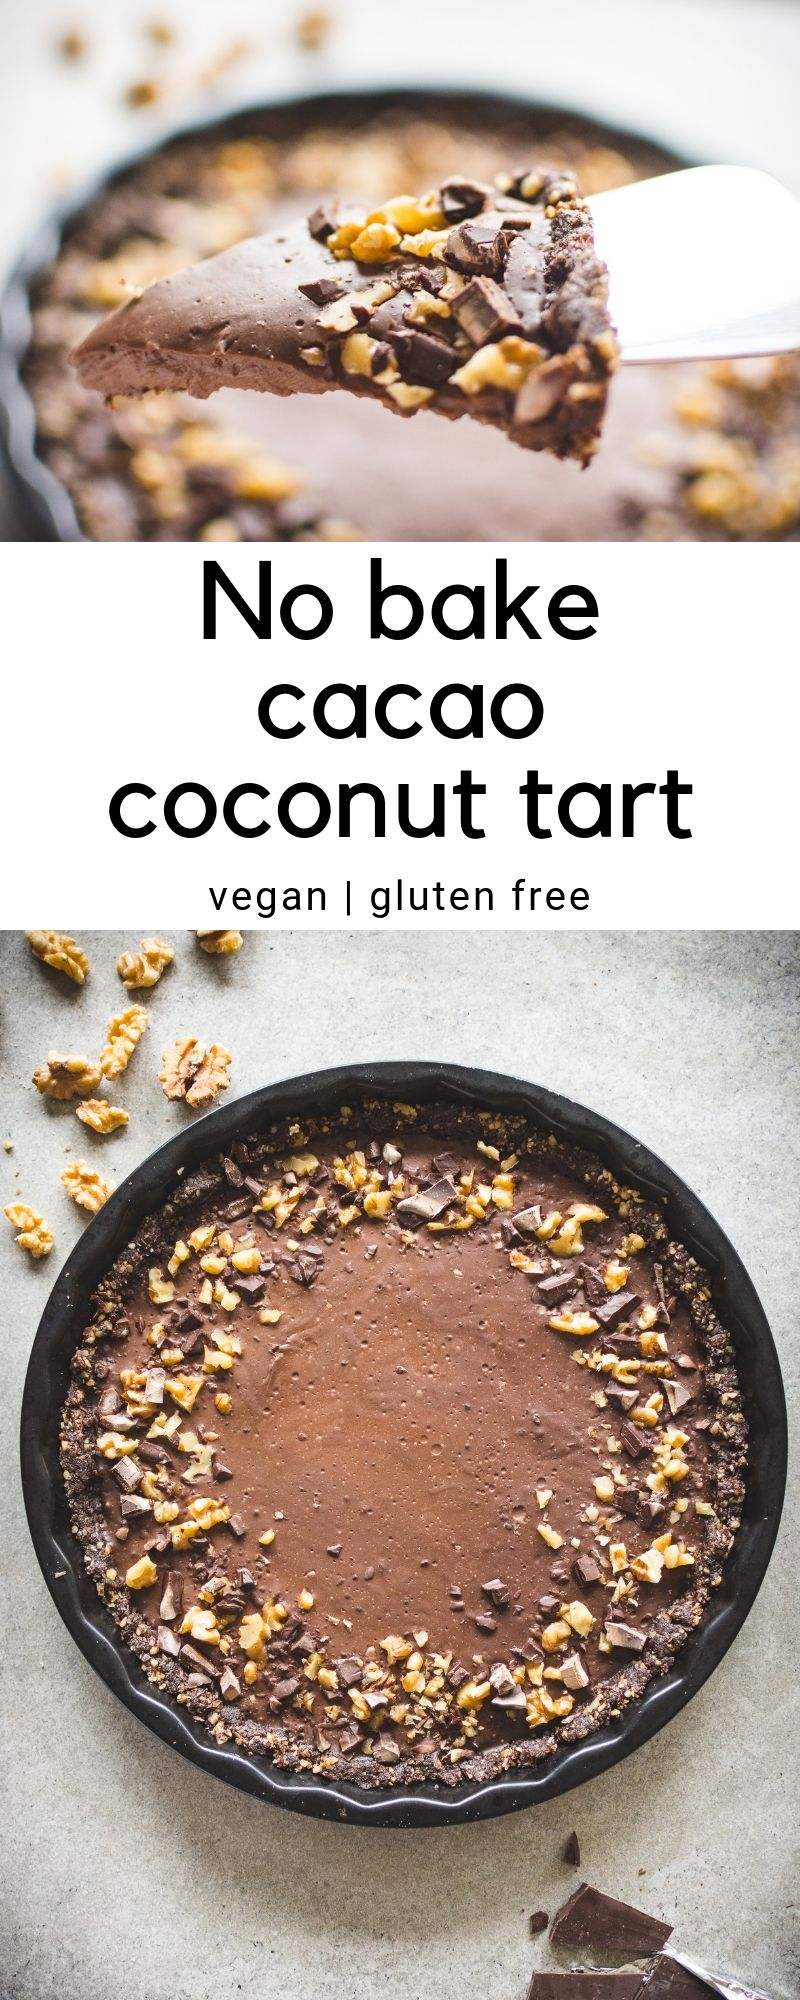 No Bake Cacao Coconut Tart